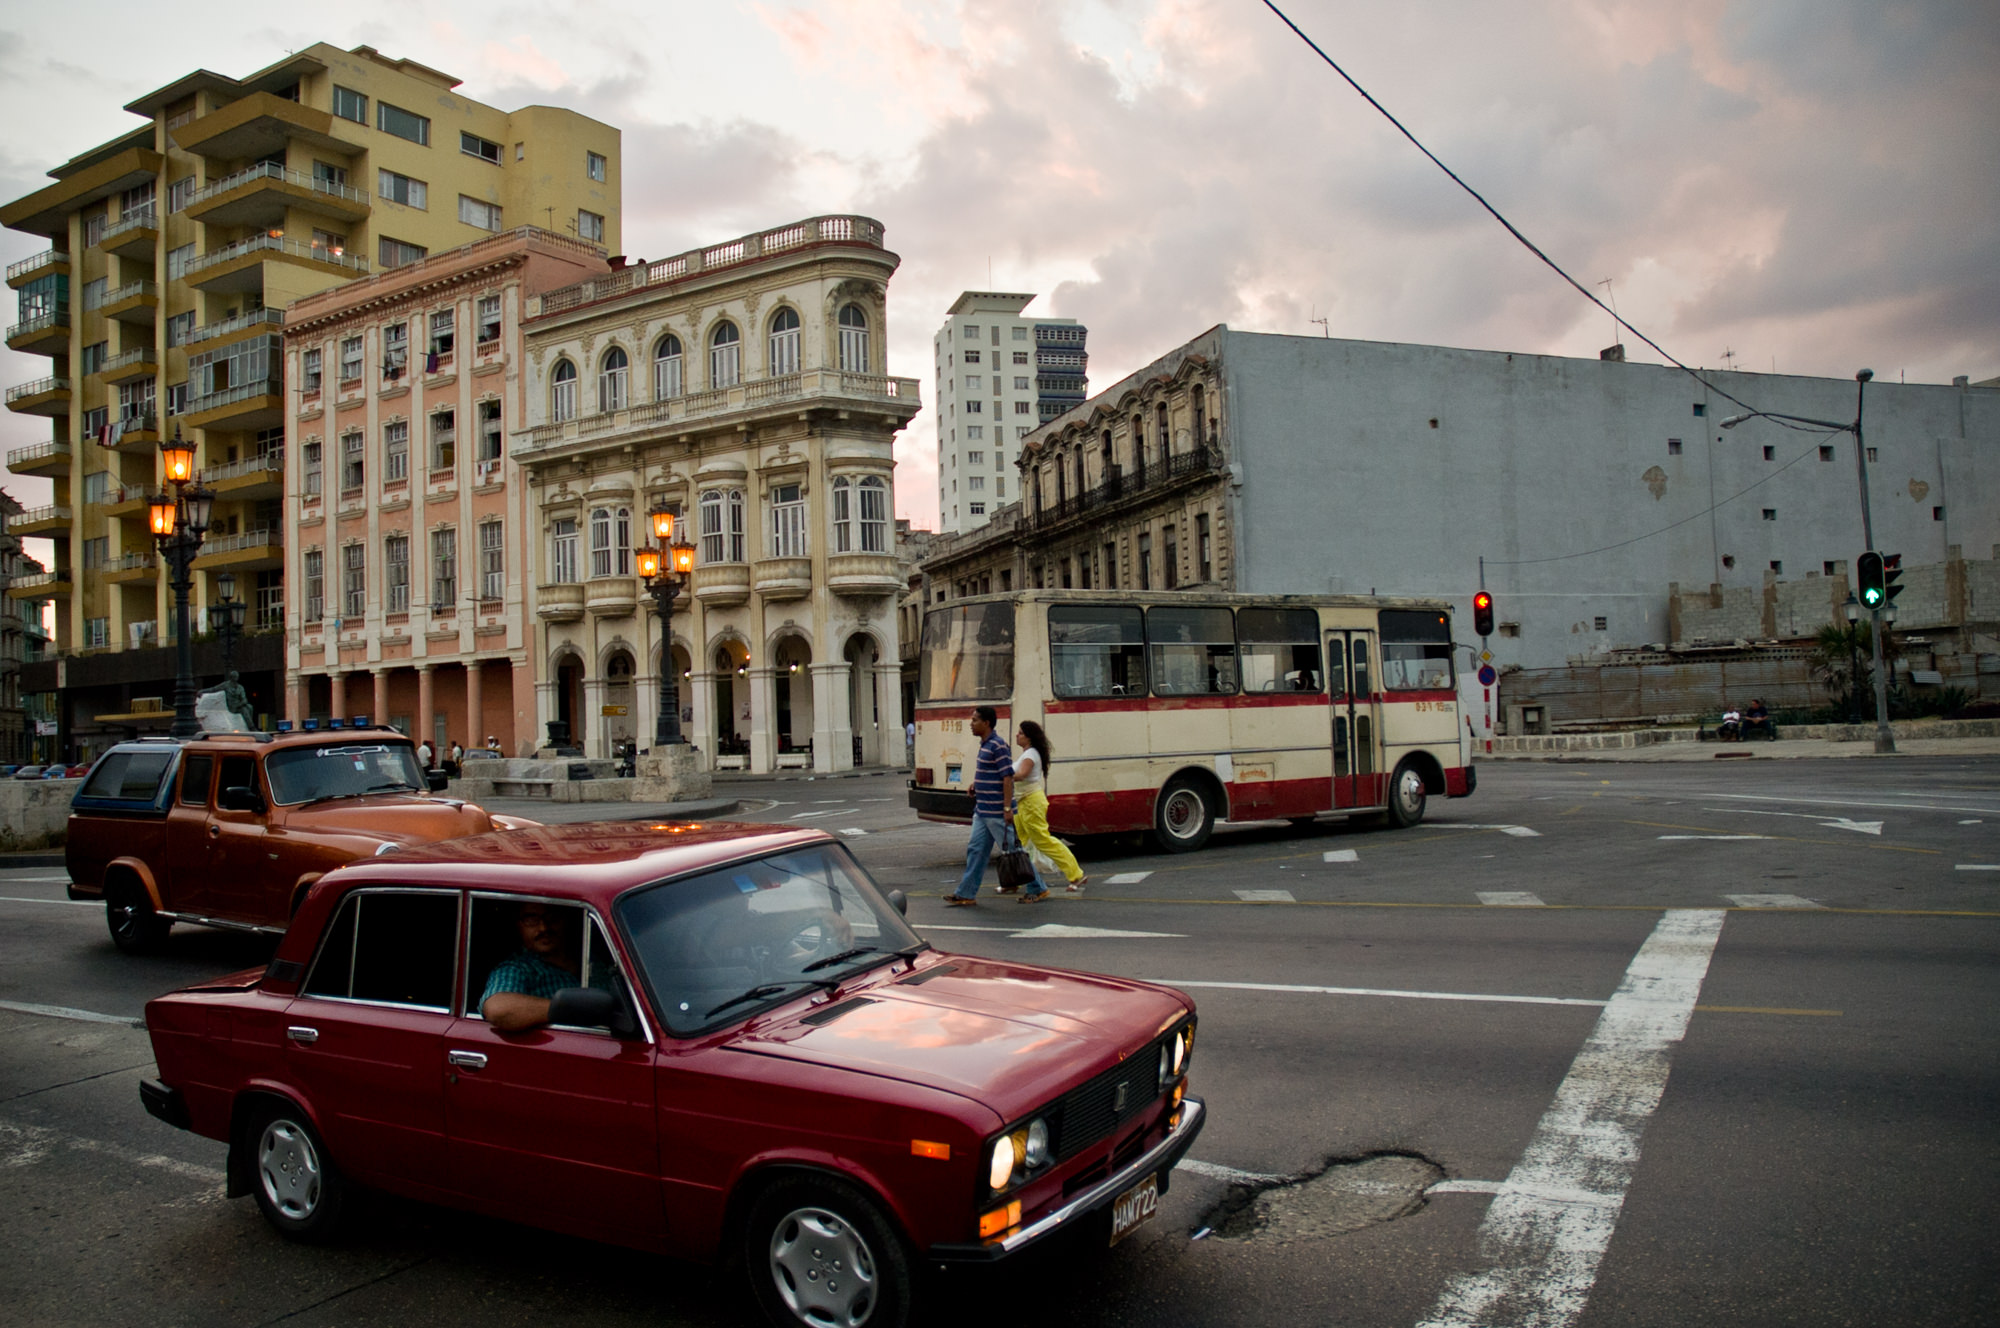 wojtek-jakubiec-photographer-montreal-cuba-havana-street-documentary-cars-and-people-by-the-malecon.jpg